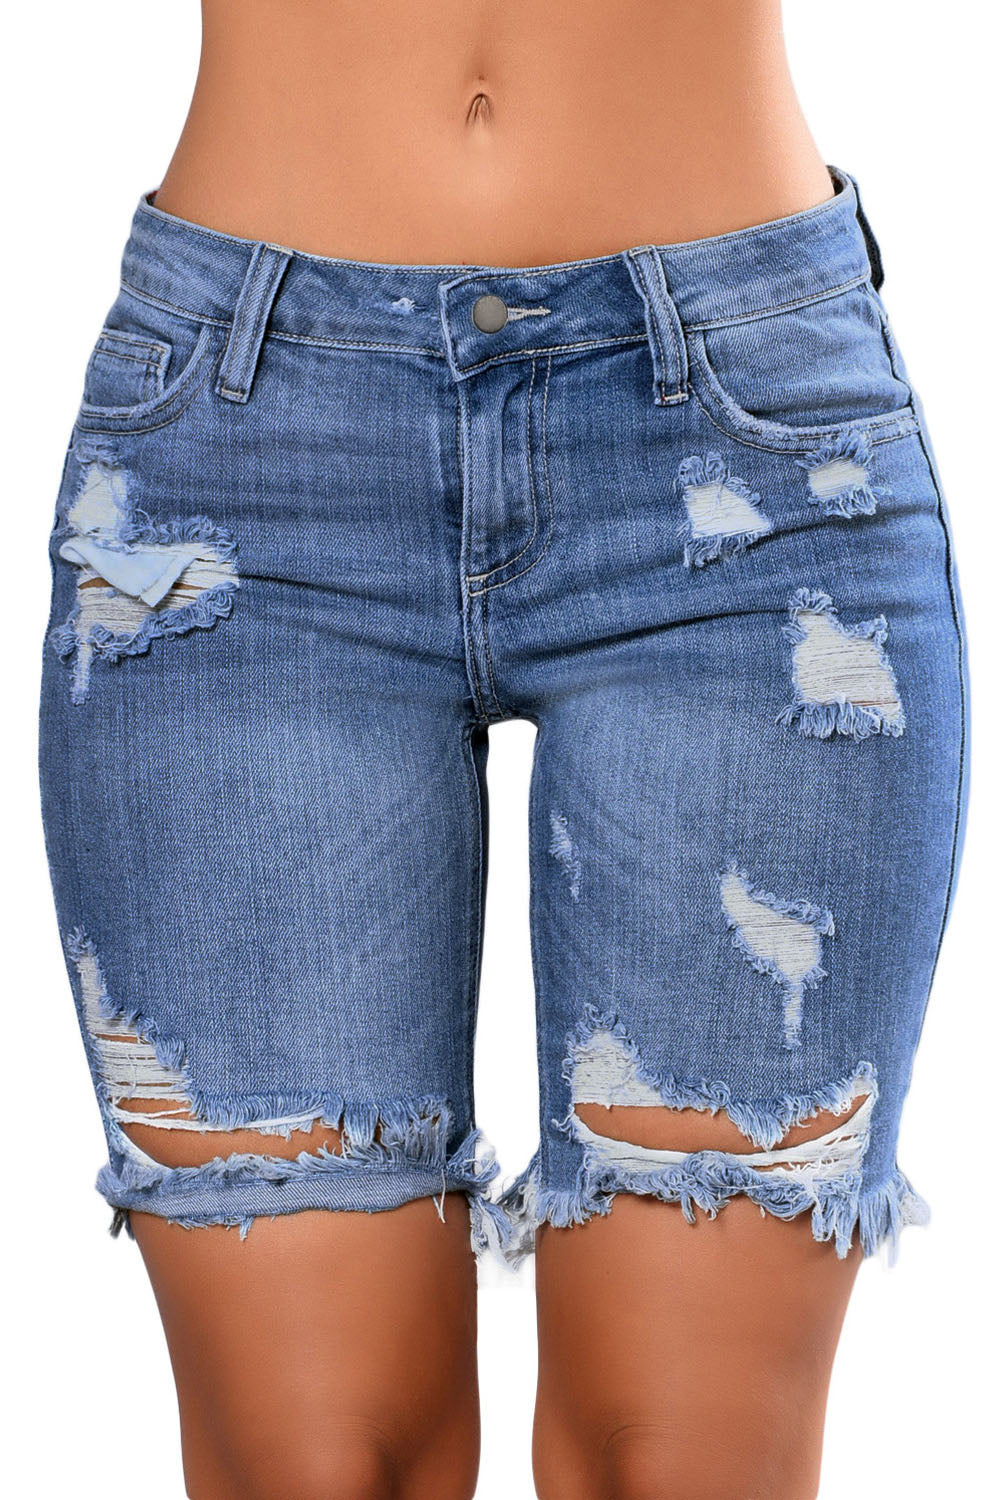 Light Blue Denim Ripped Hole Distressed Shorts